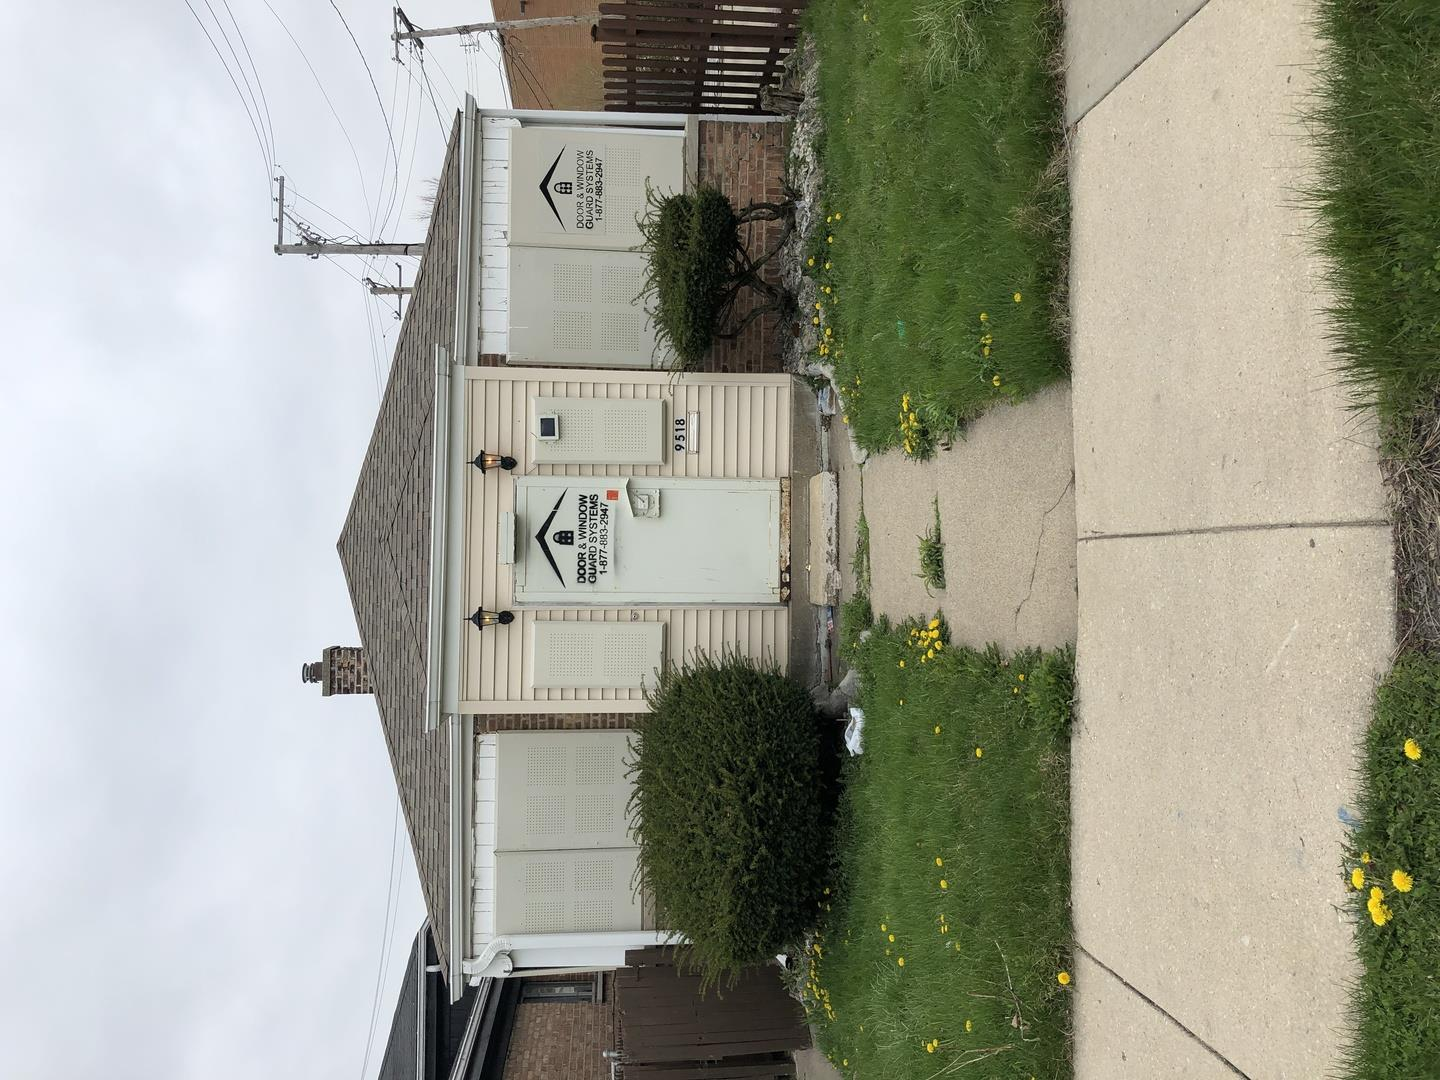 9518 S King Drive, Chicago, IL 60628 - #: 10744009